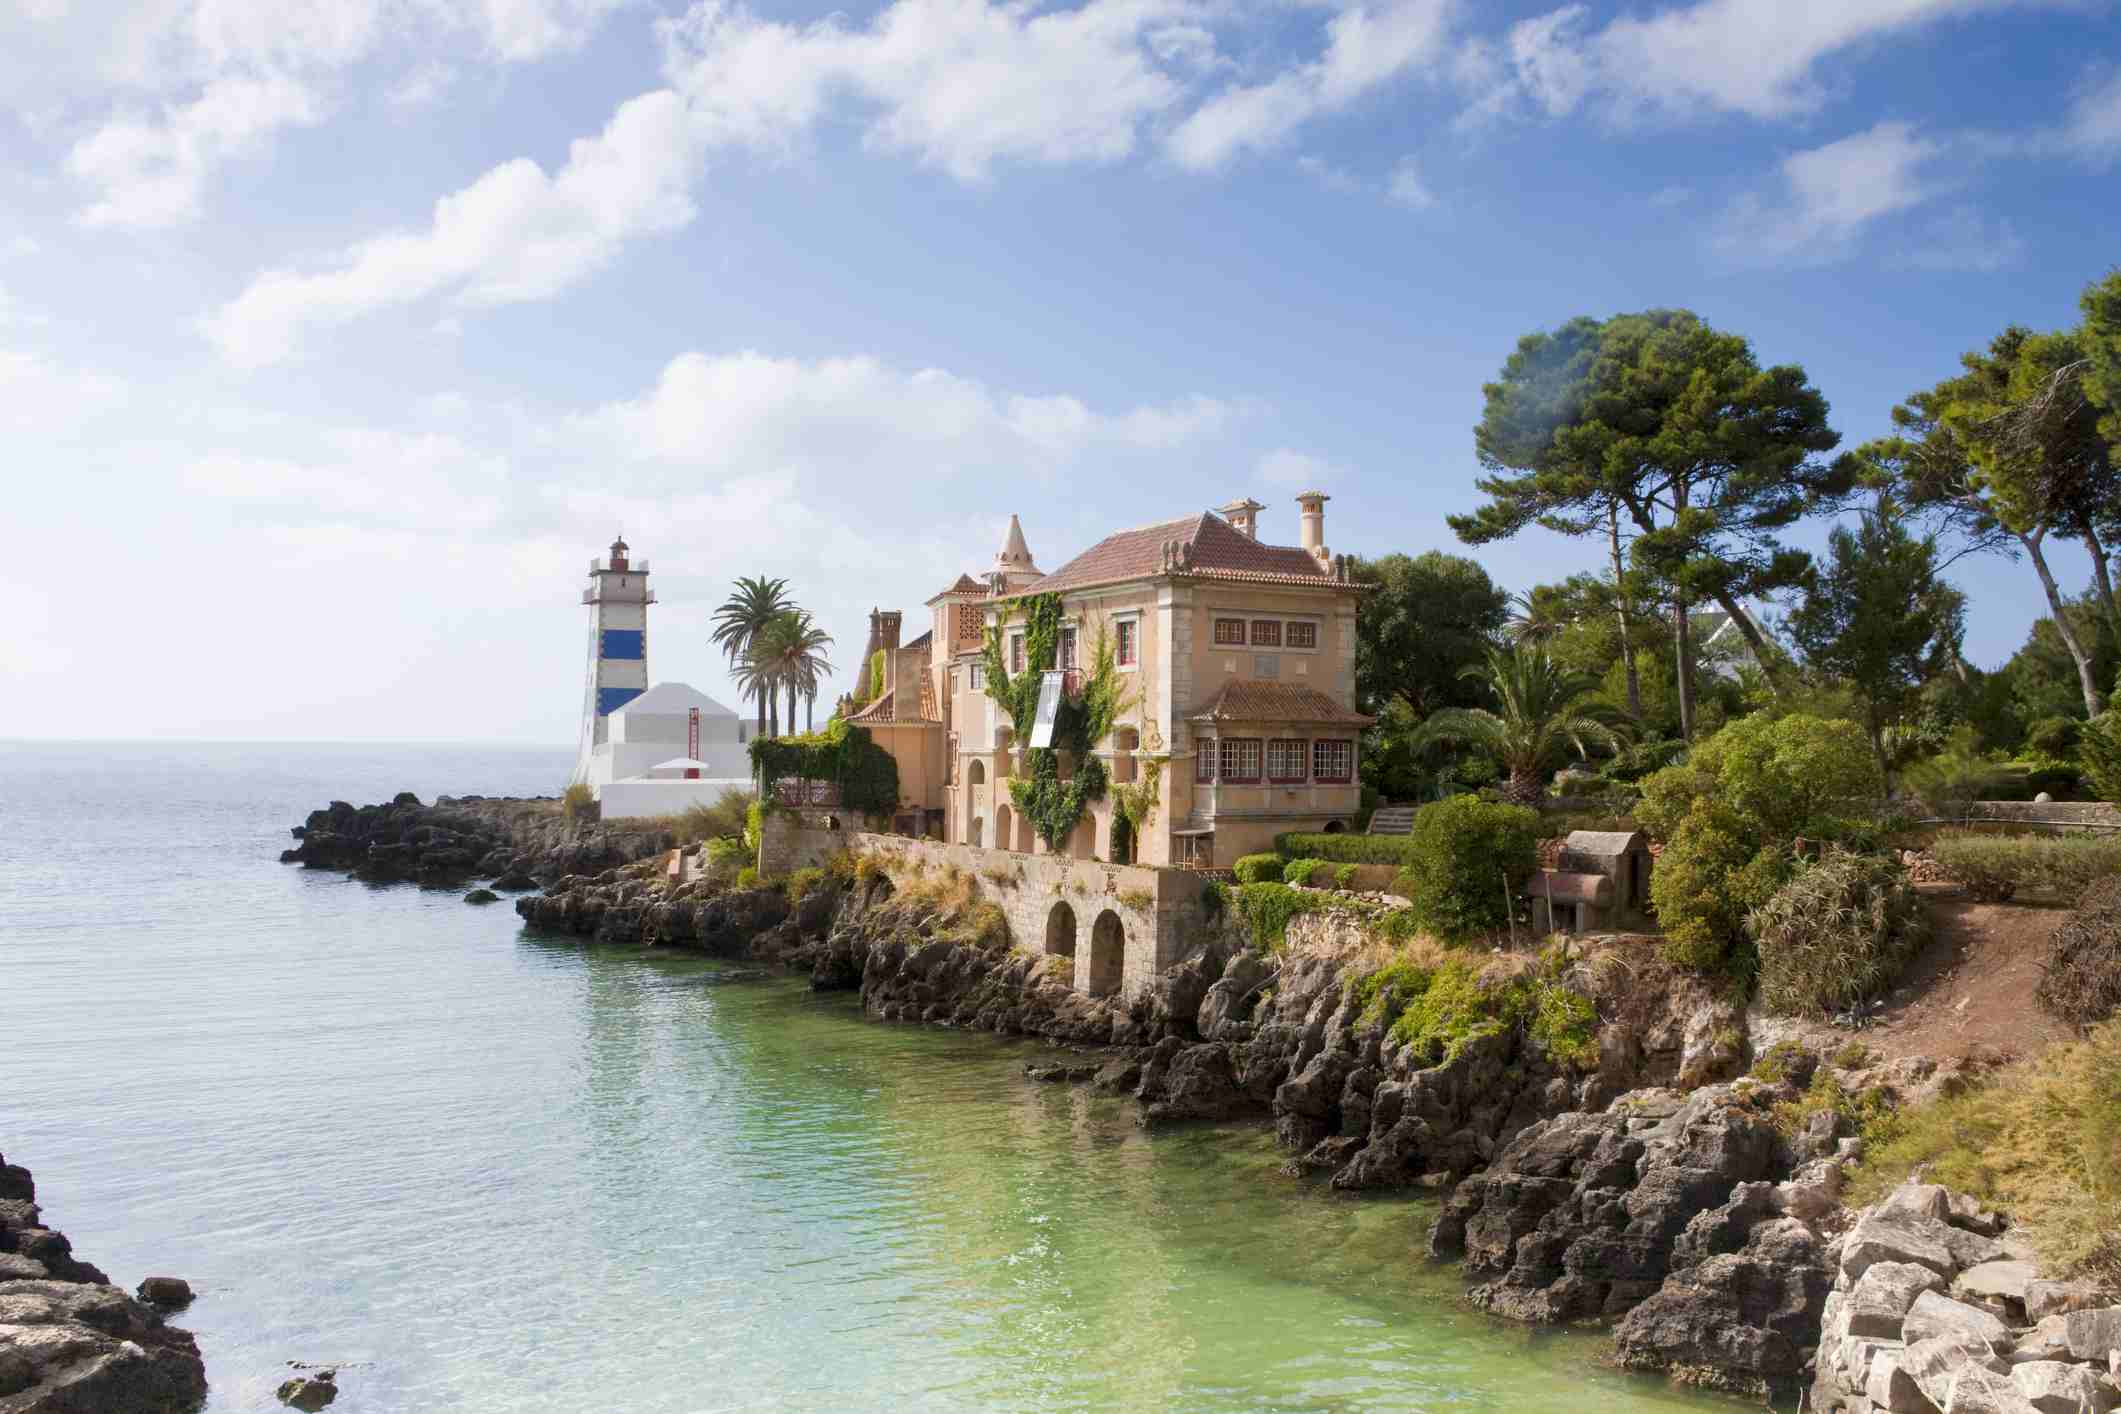 Santa Marta Lighthouse and Casa de Santa Maria in Cascais